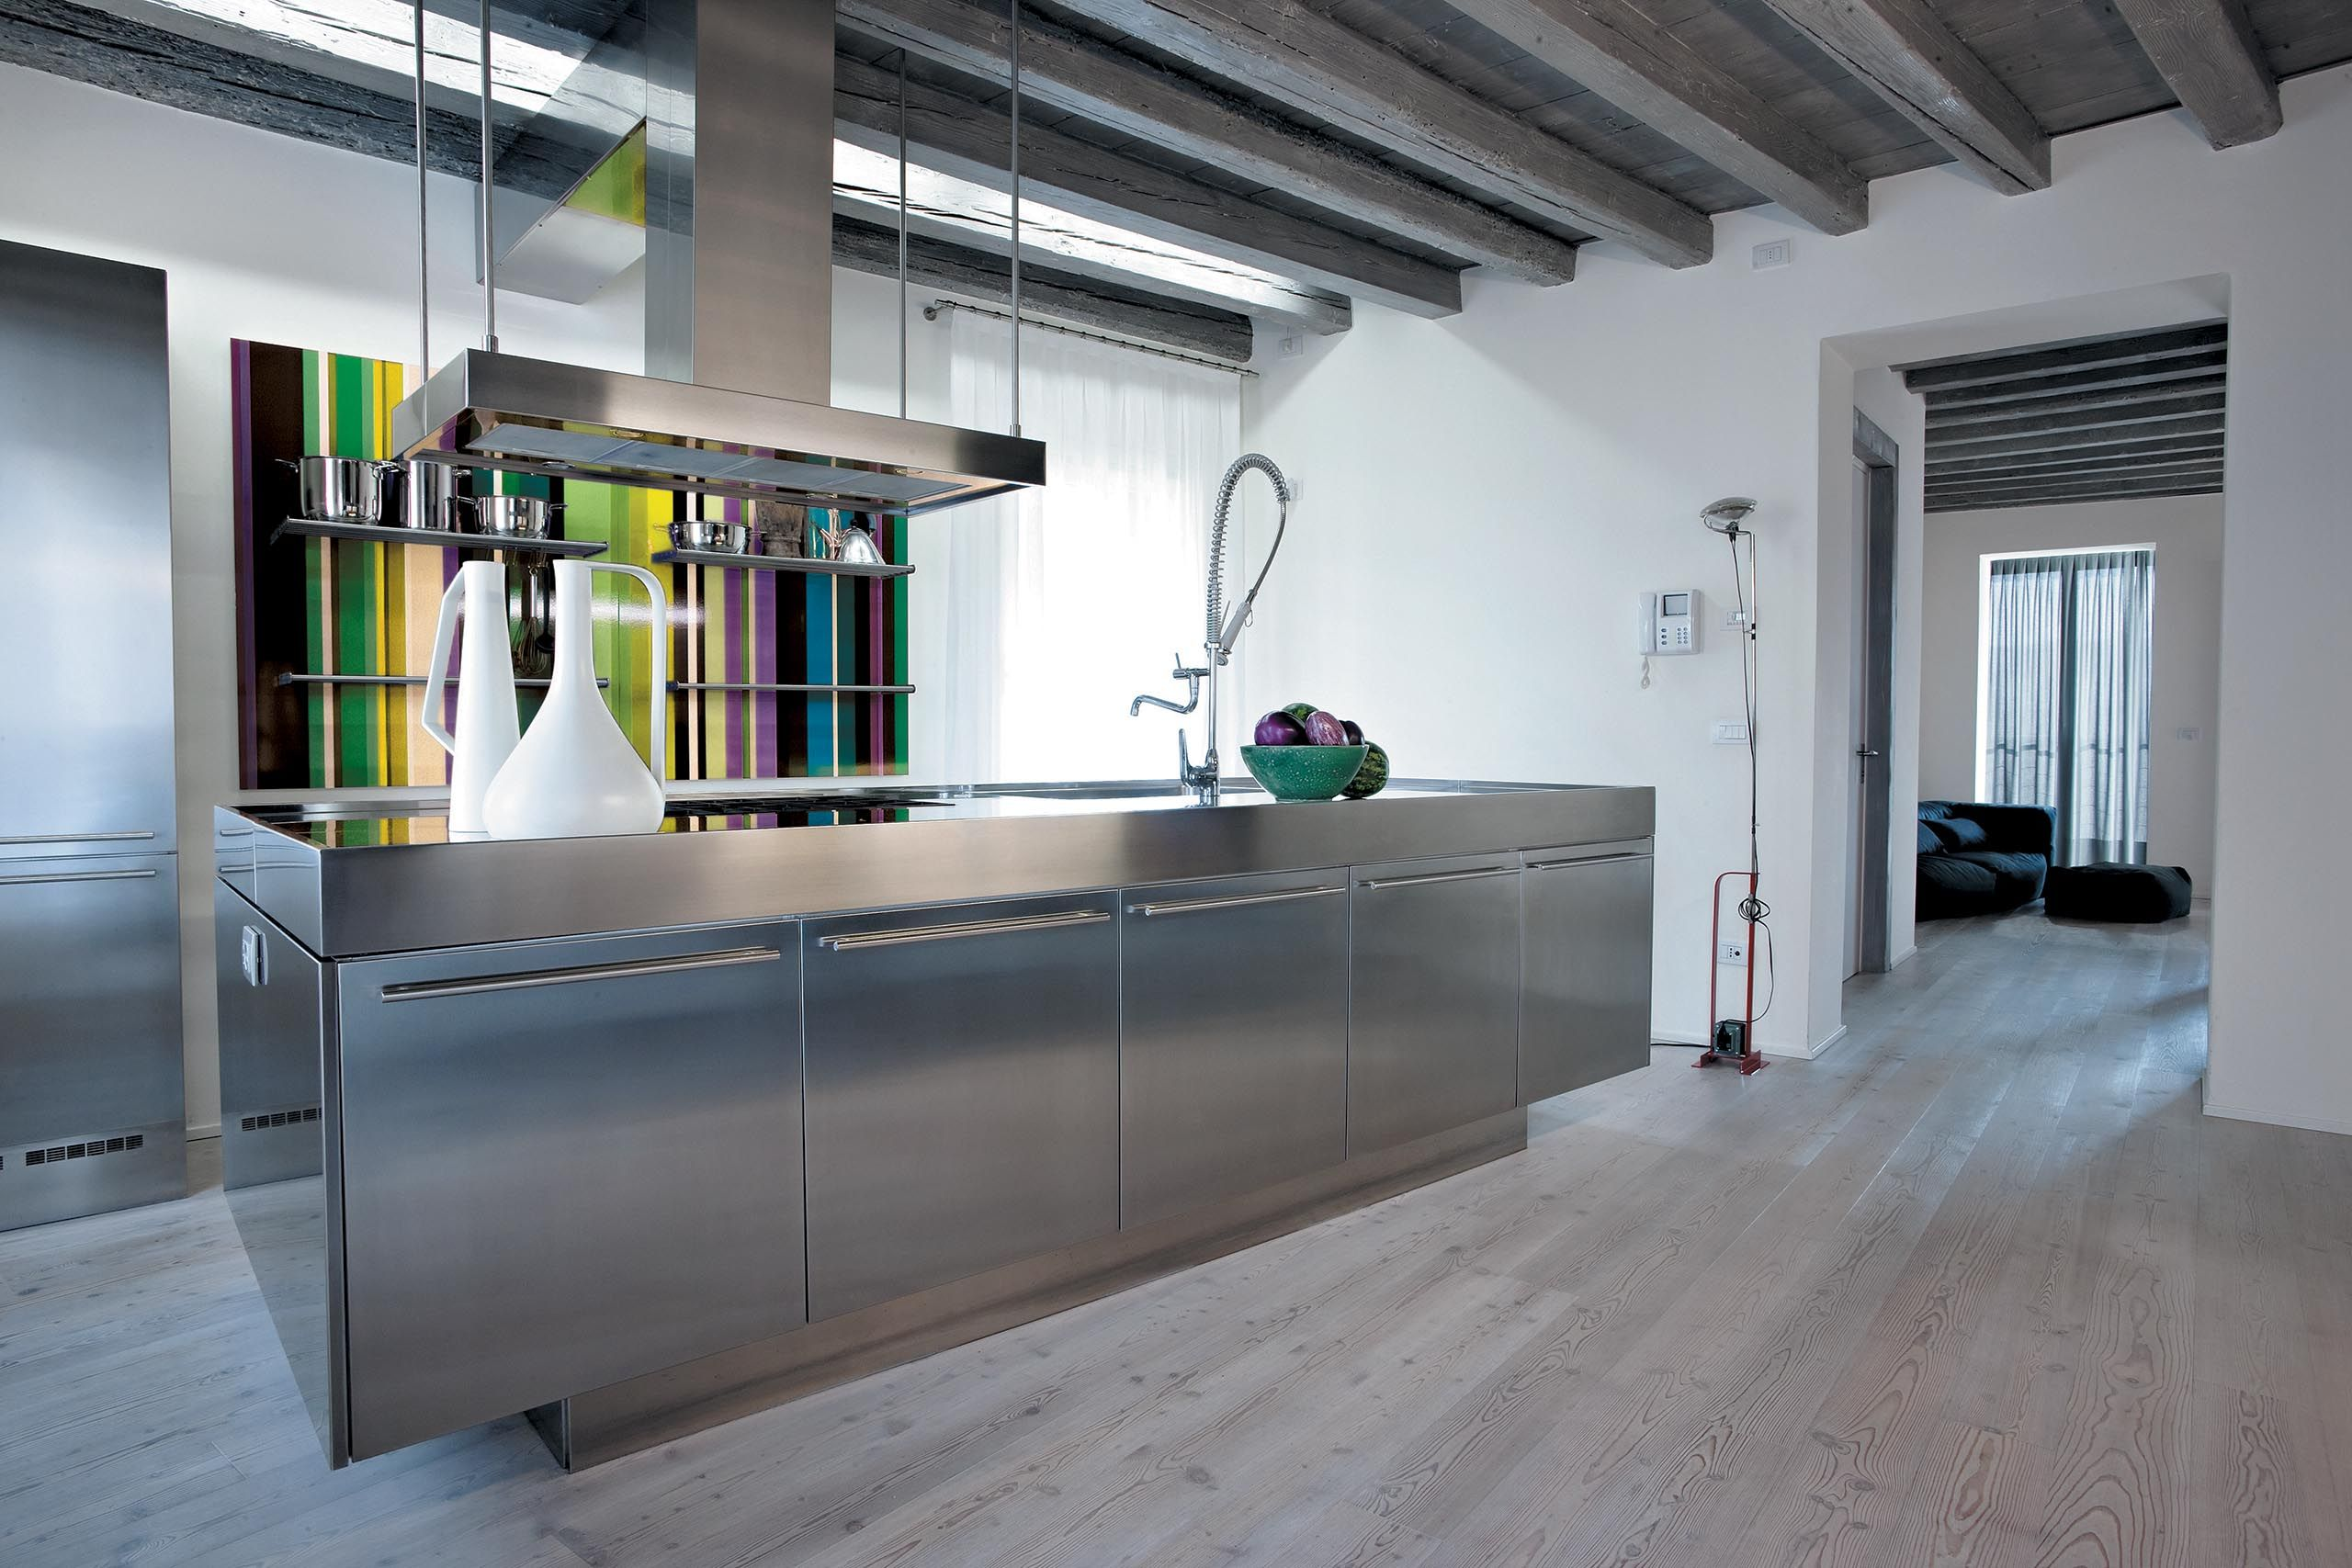 A stainless steel kitchen with bold coordinated design